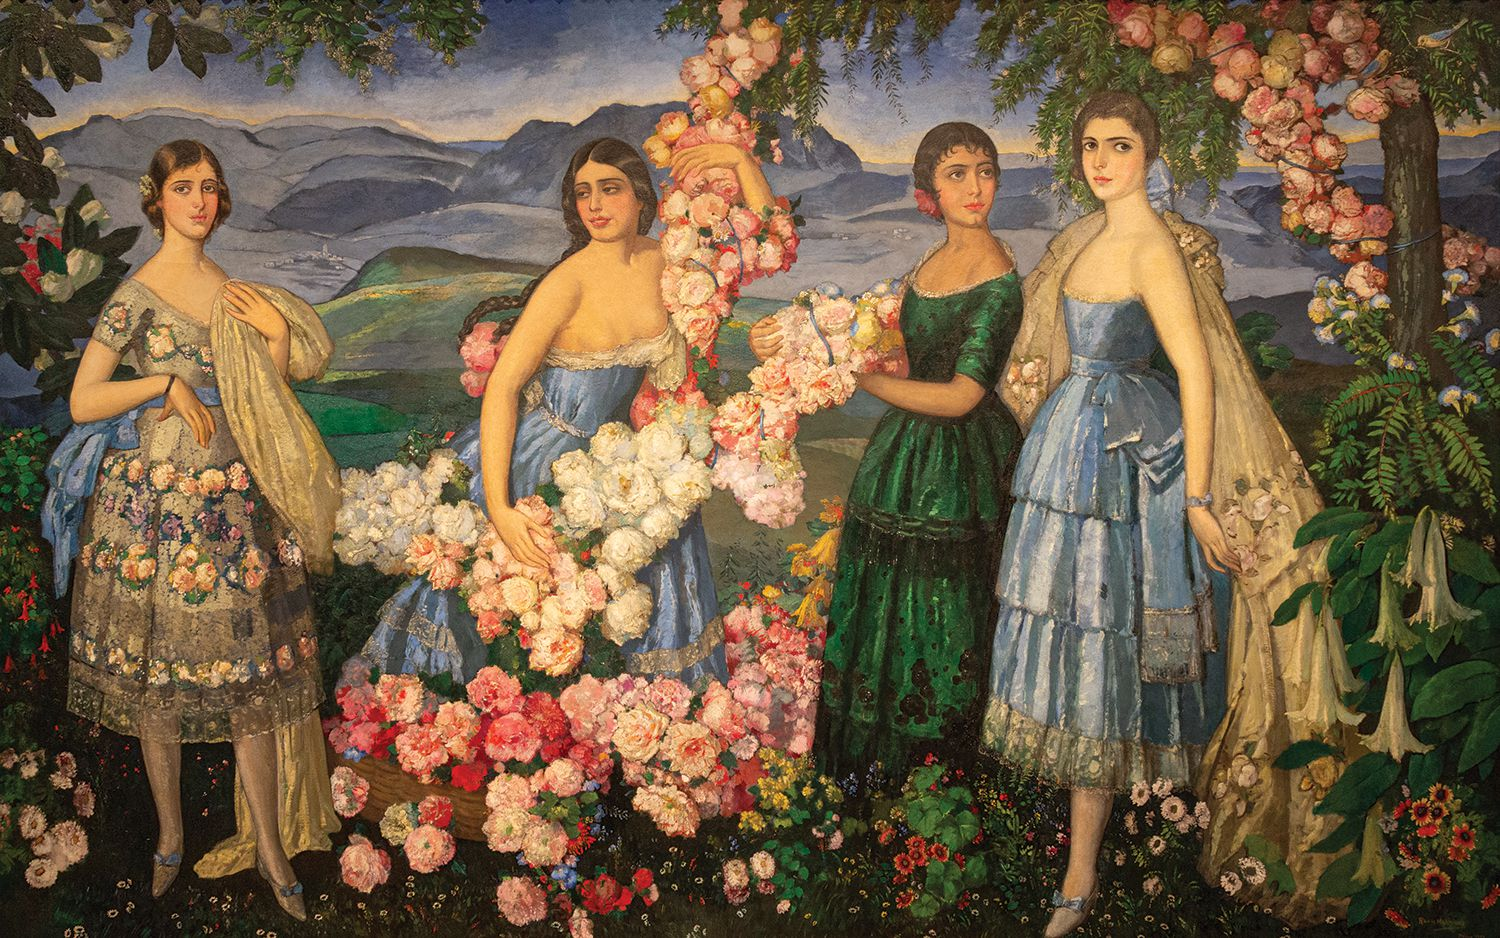 Alfredo Ramos Martinez, Flores Mexicanas, 1914-29, oil on canvas. It's the title piece in a current show at the DMA. Missouri Historical Society Collections. Reproduced by permission.